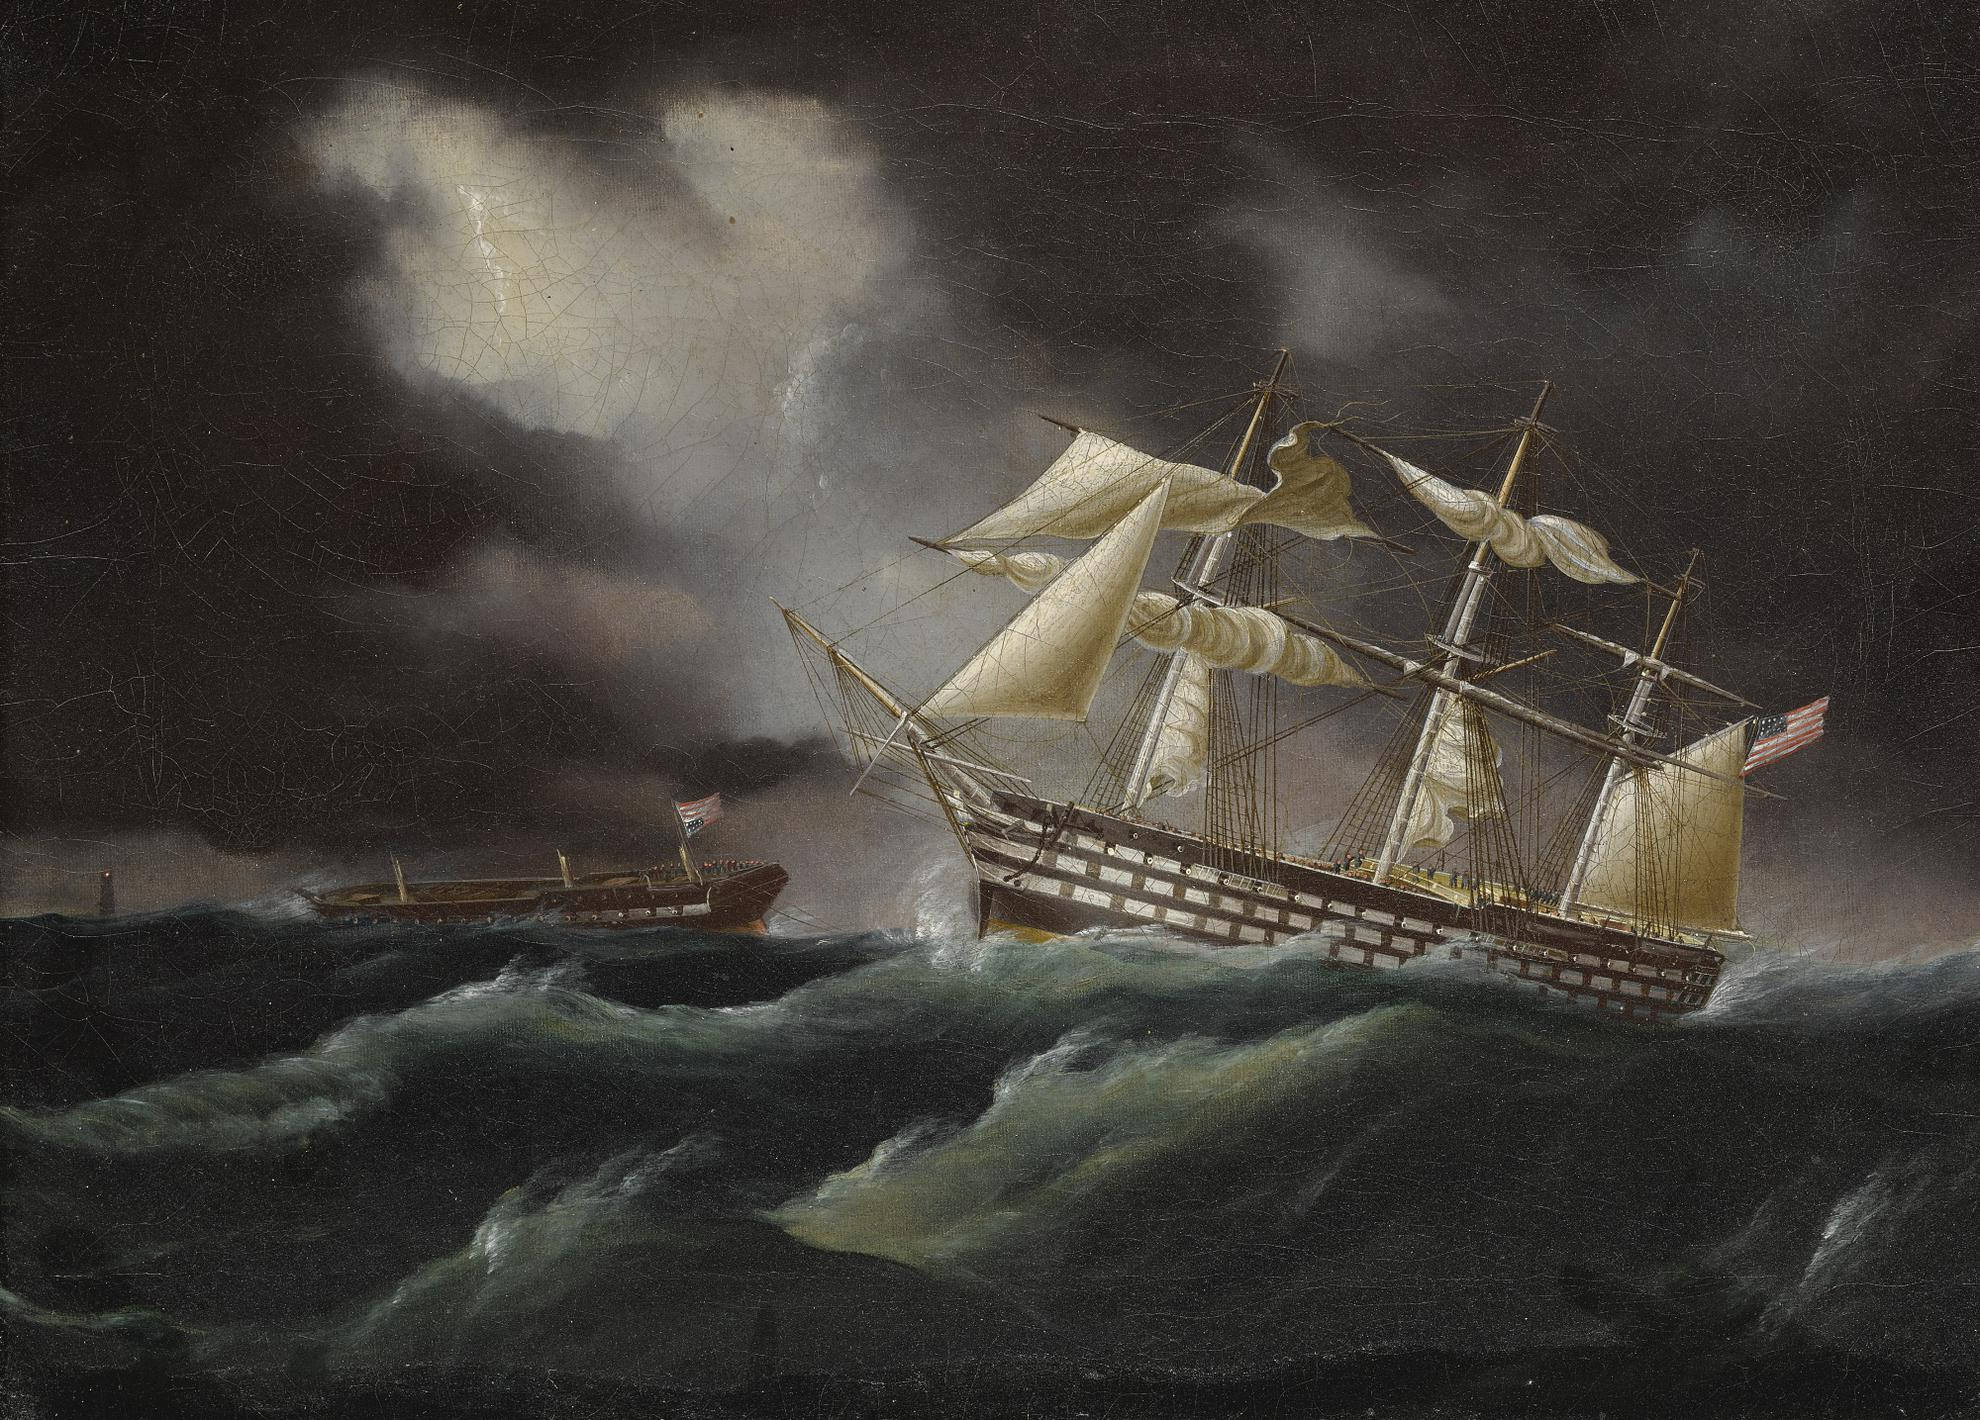 James Edward Buttersworth - United States Ship Of The Line Coming To The Aid Of Frigate In Distress (Ships In A Stormy Sea)-1848